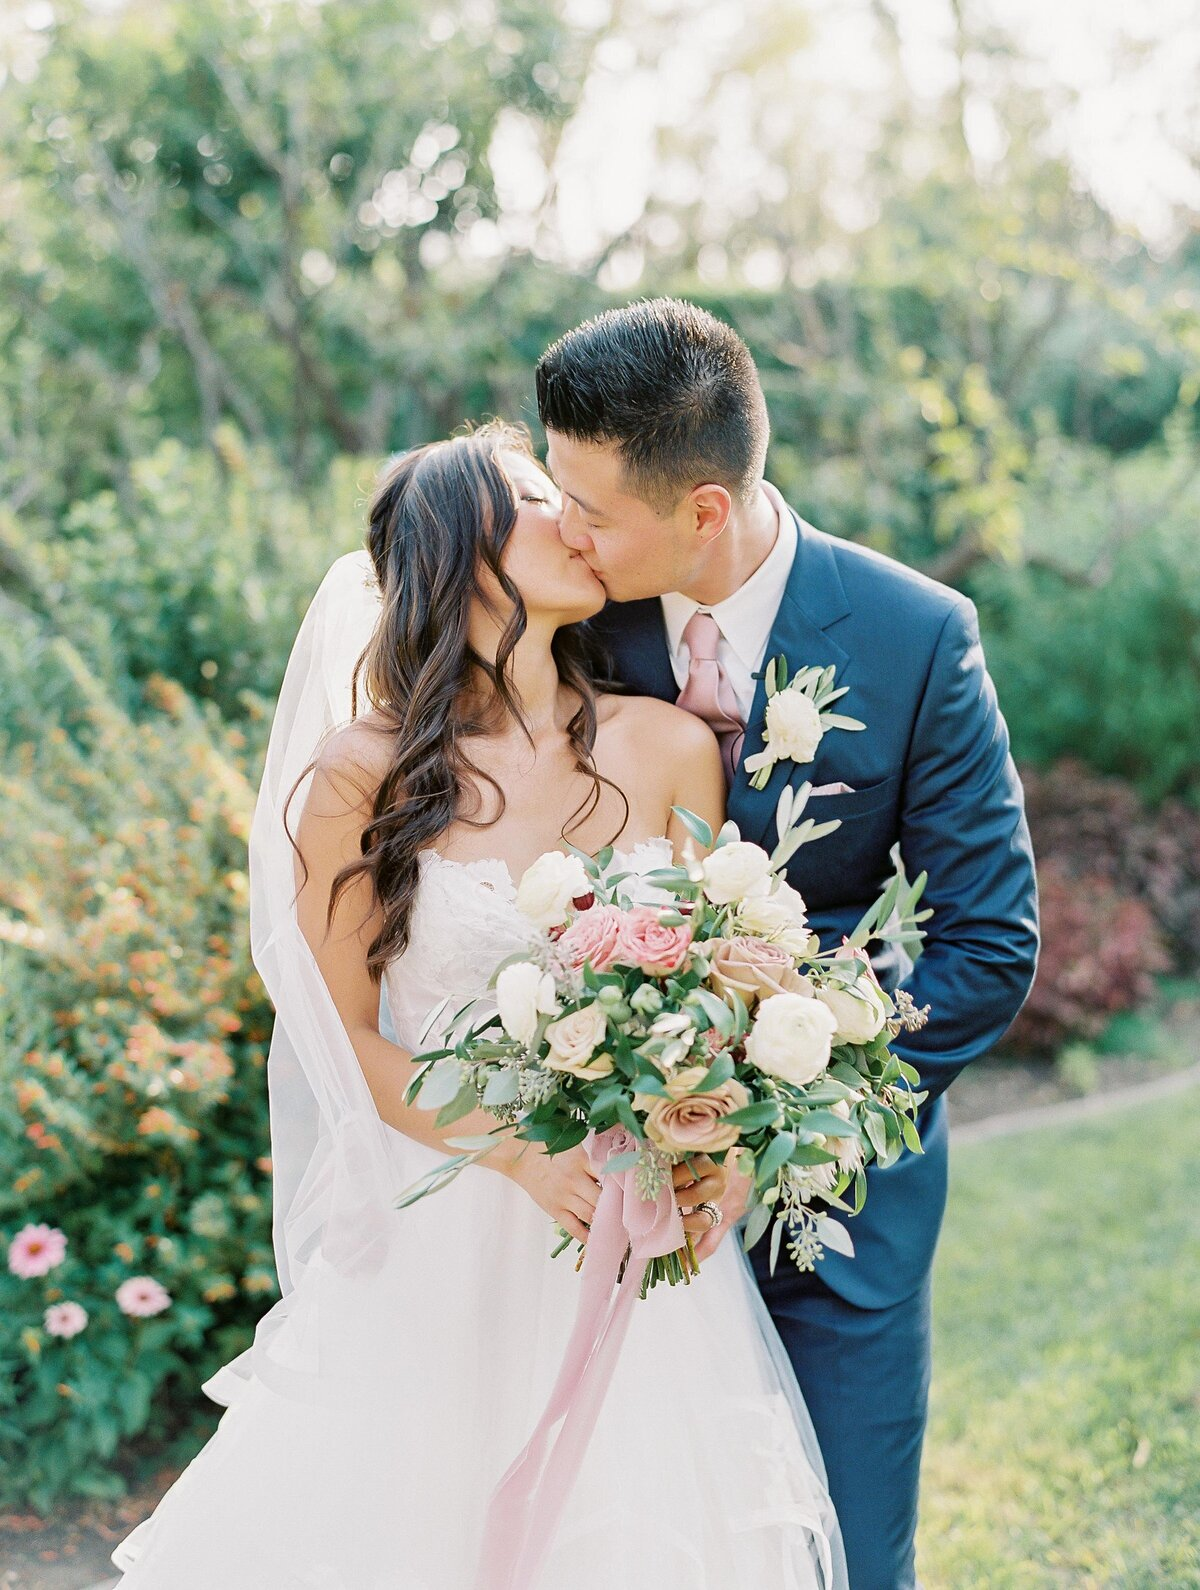 Dani Toscano Photography — Maravilla Gardens Wedding-52